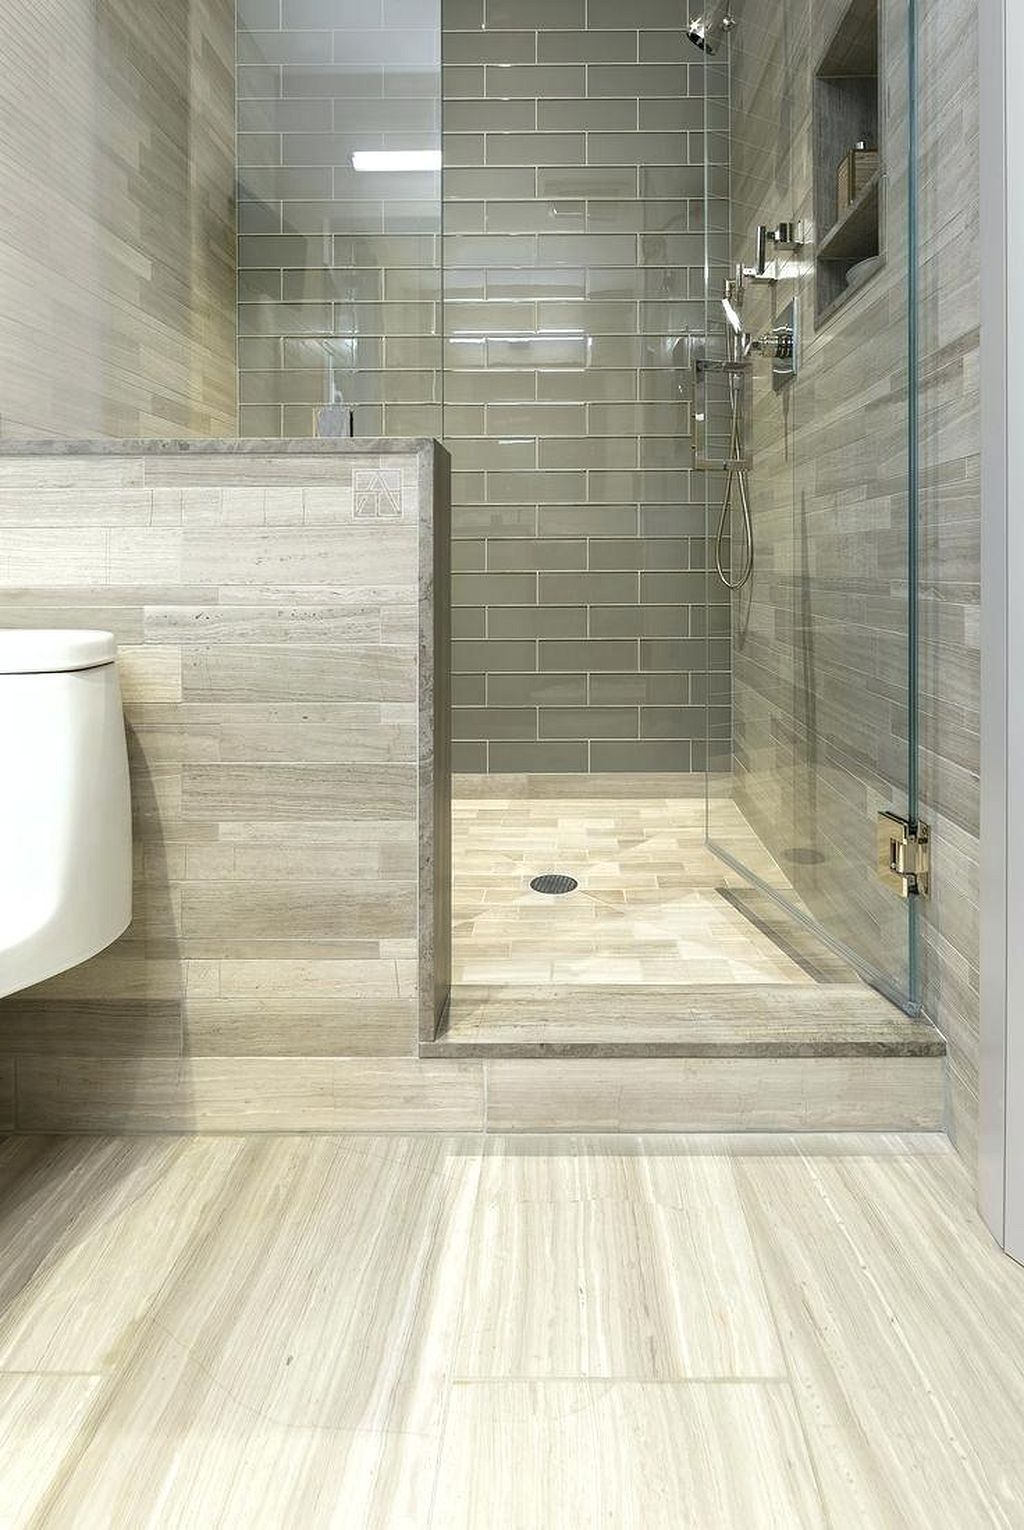 Bathroom Remodel With Stikwood: Latest Trends In Bathroom Tile Design (11) In 2020